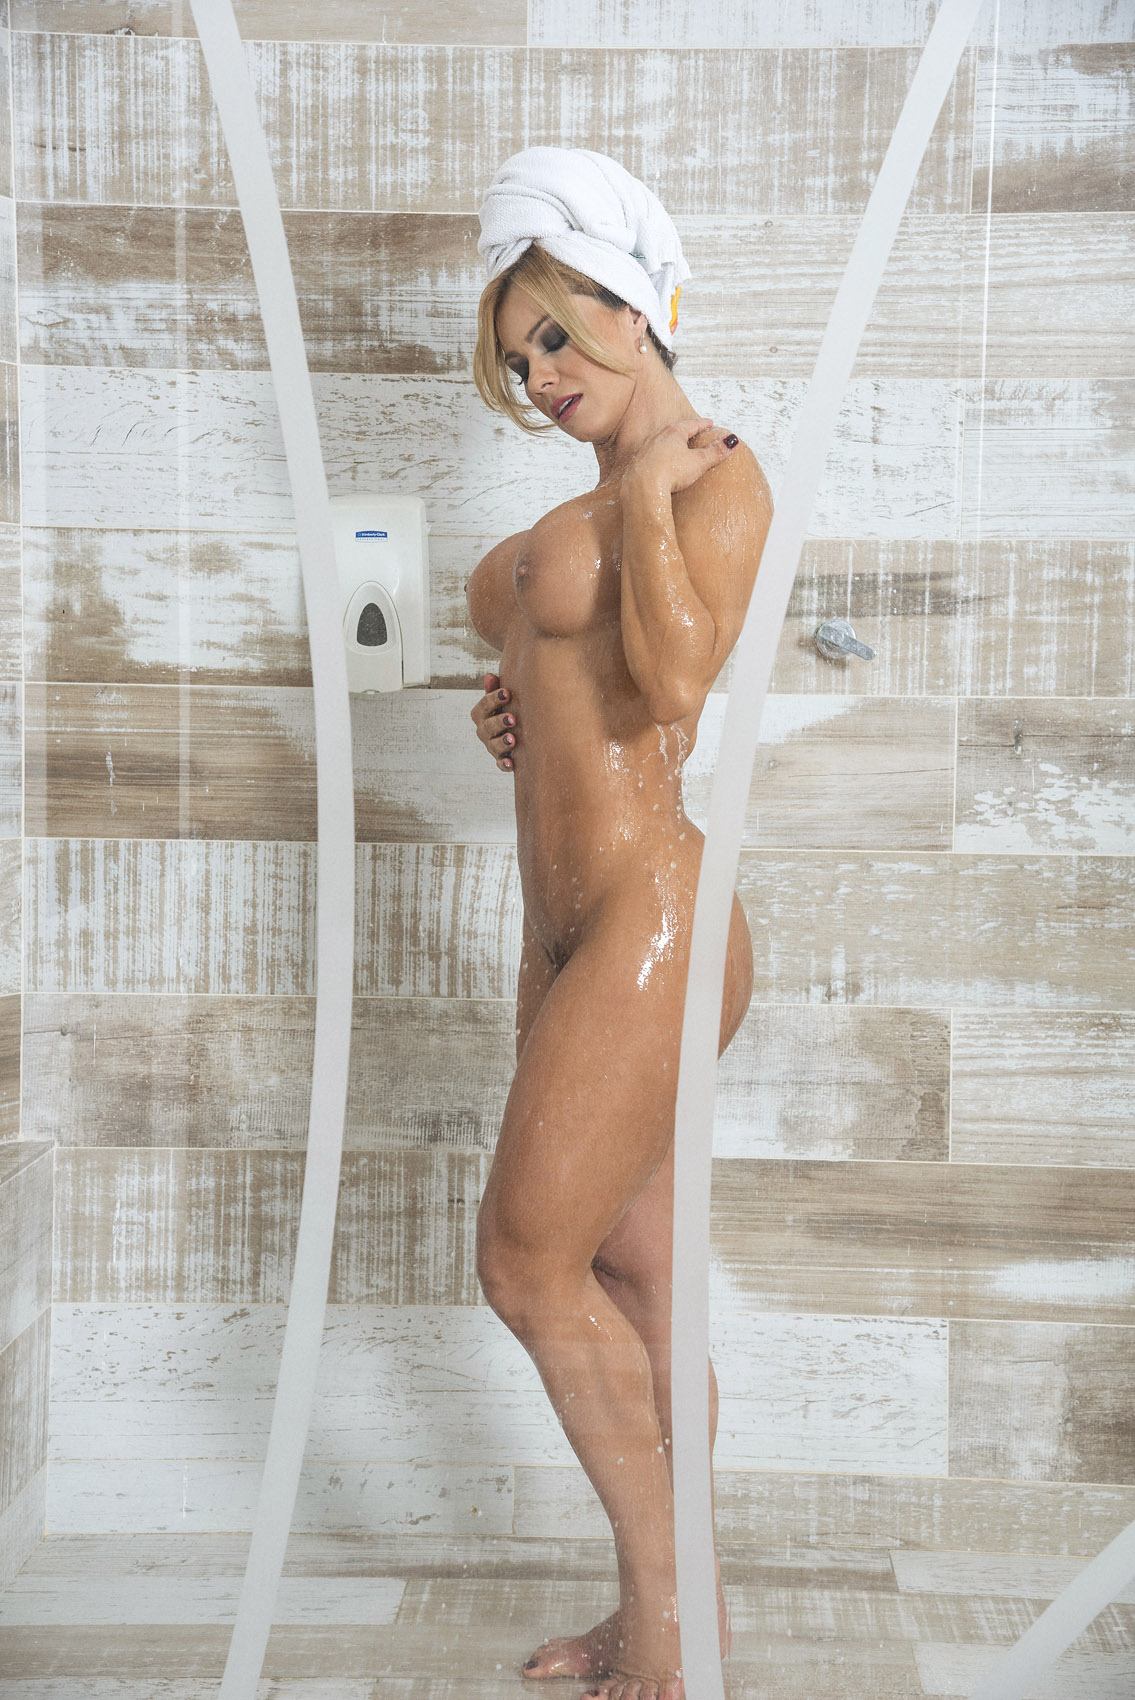 ready help you, caught spying milf shower think, that